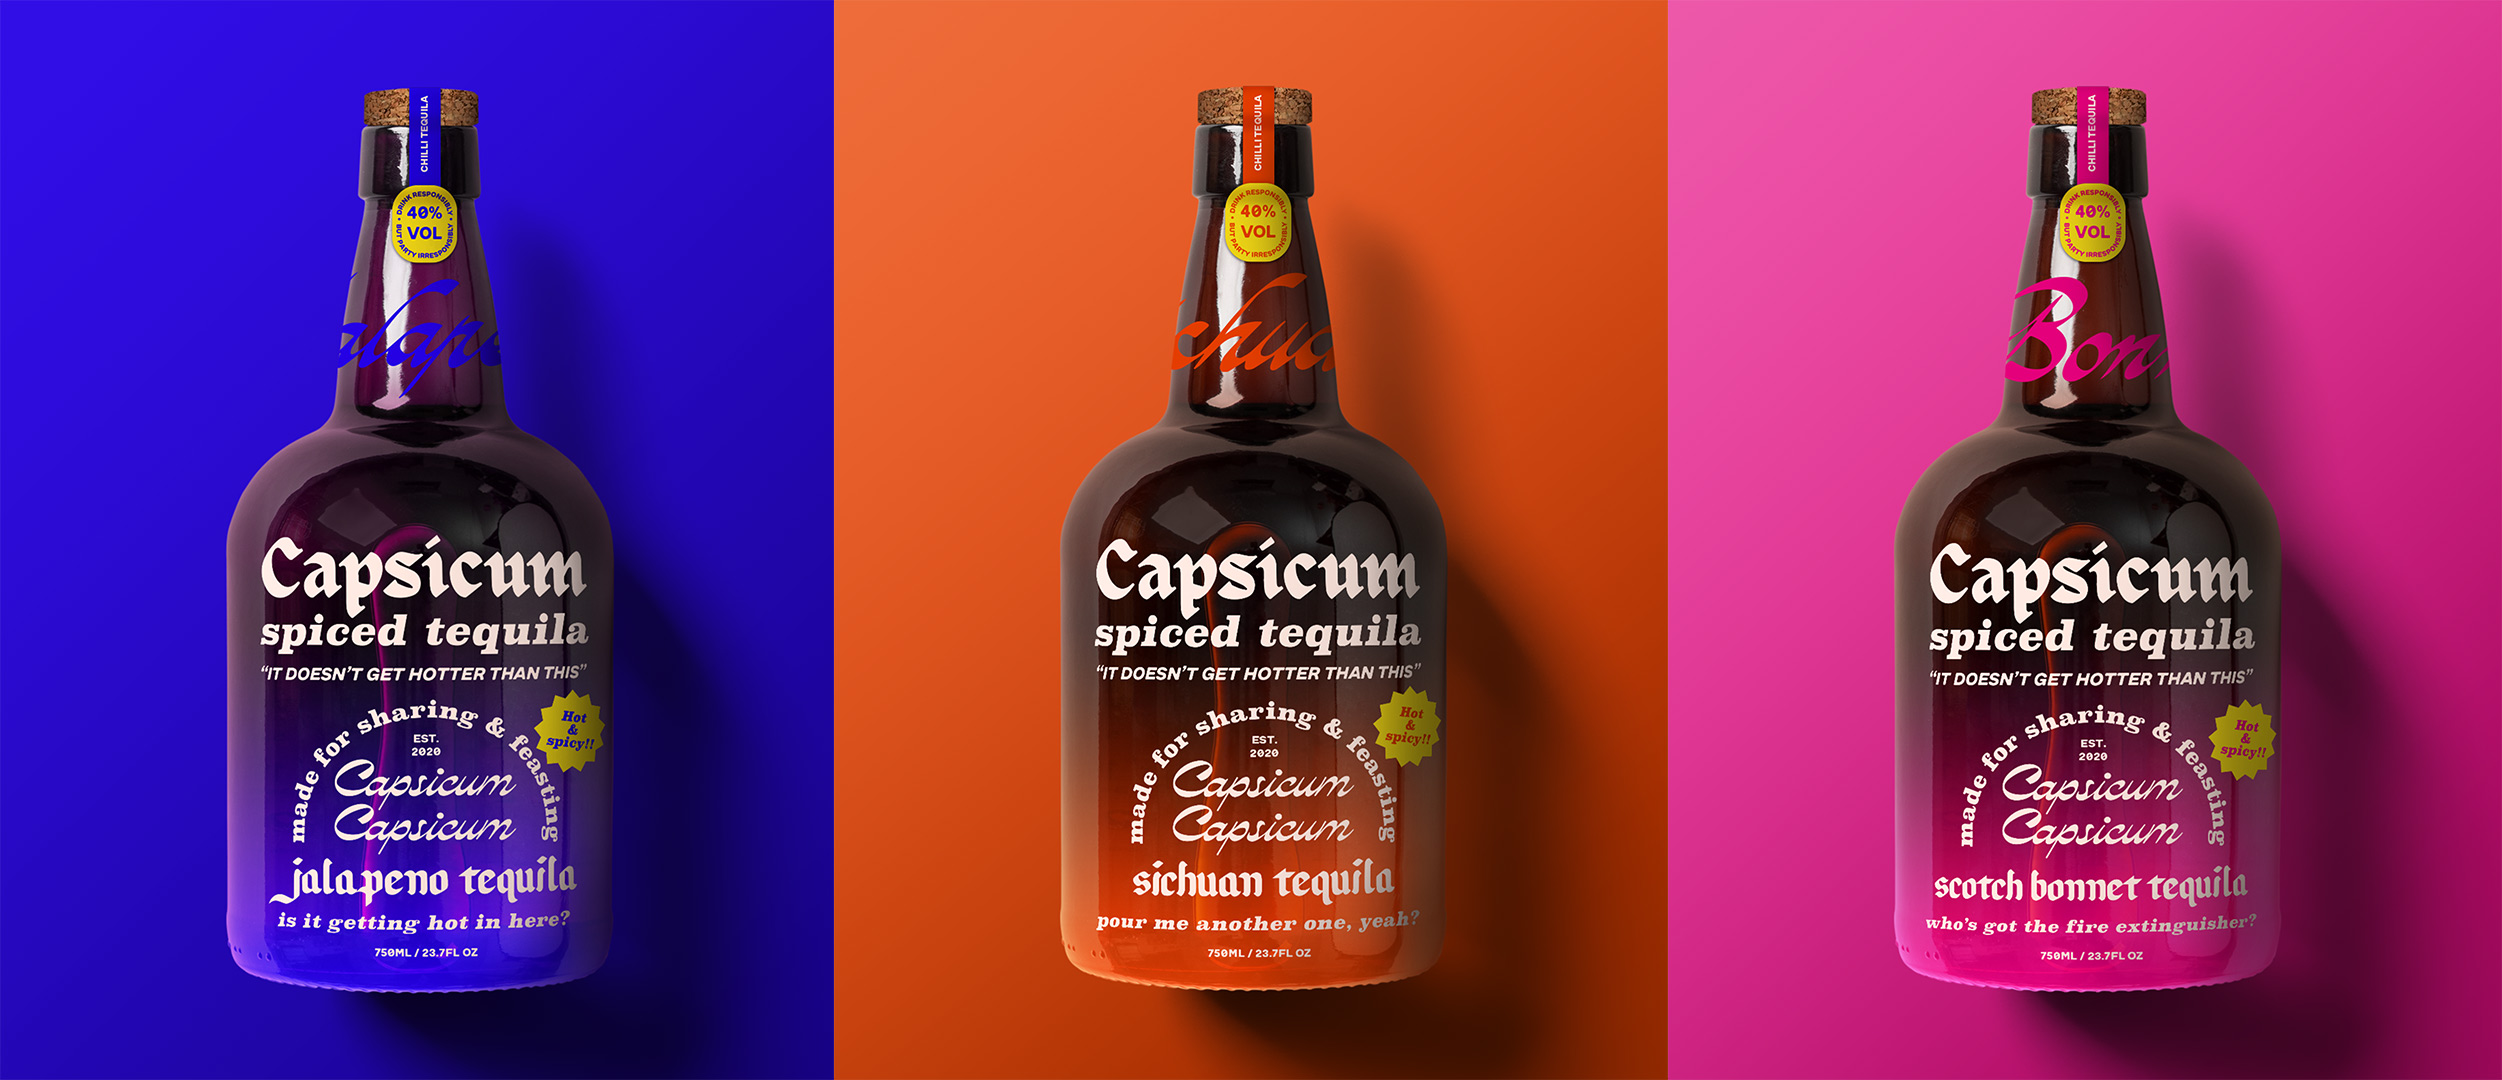 three tequila bottles of different flavours: a blue jalapeno flavour, an orange sichuan flavour and a pink scotch bonnet flavour